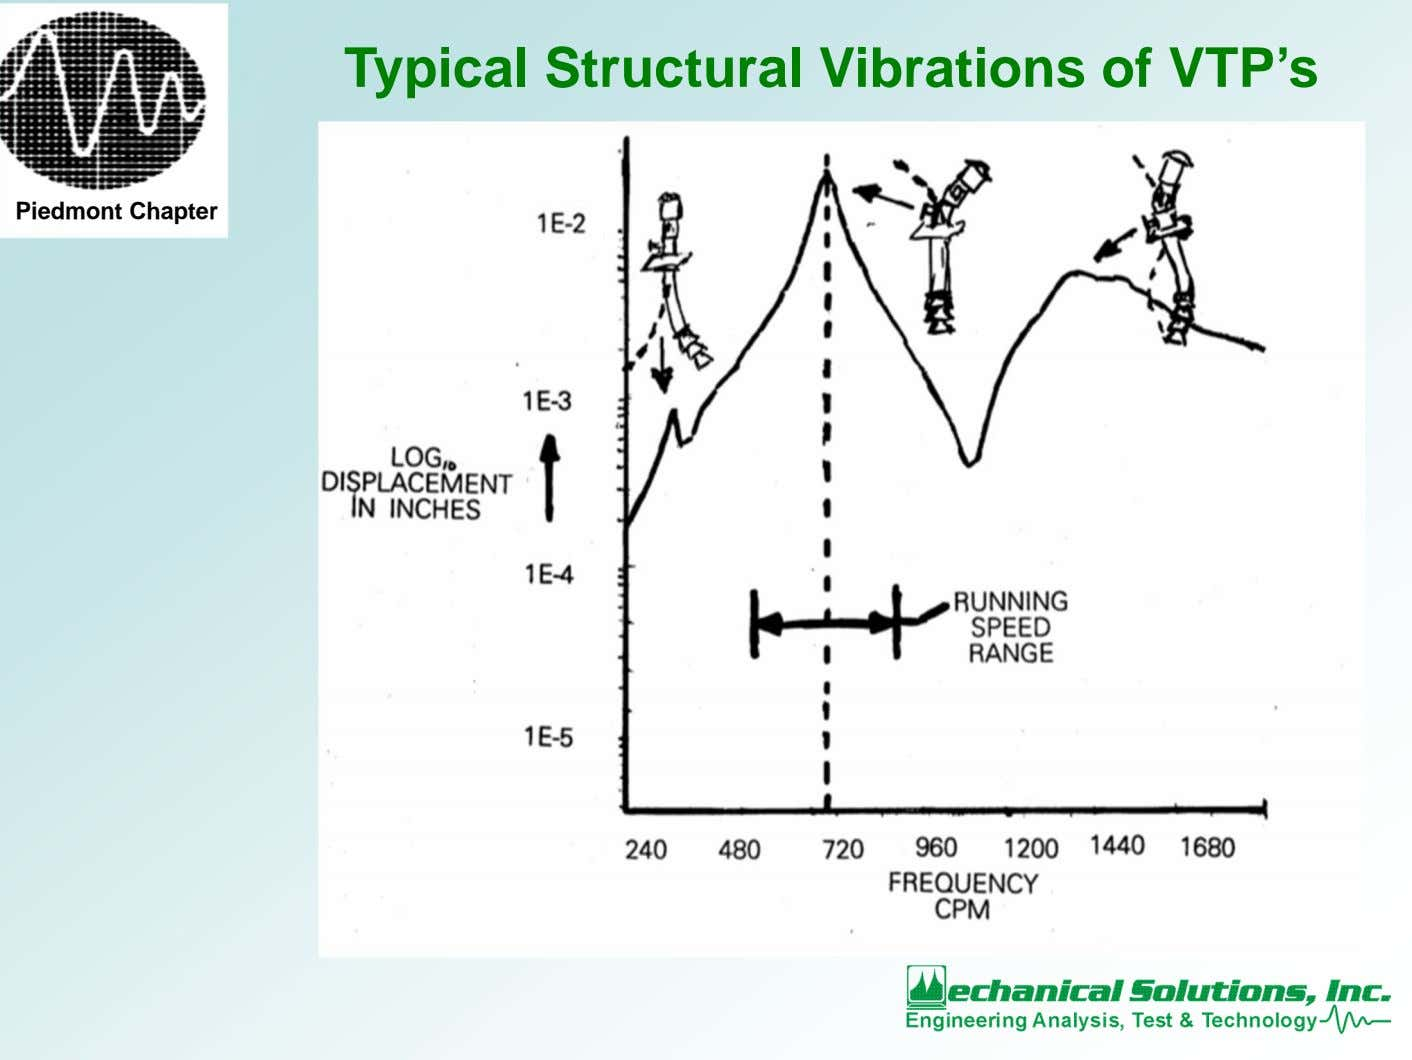 Typical Structural Vibrations of VTP's Piedmont Chapter